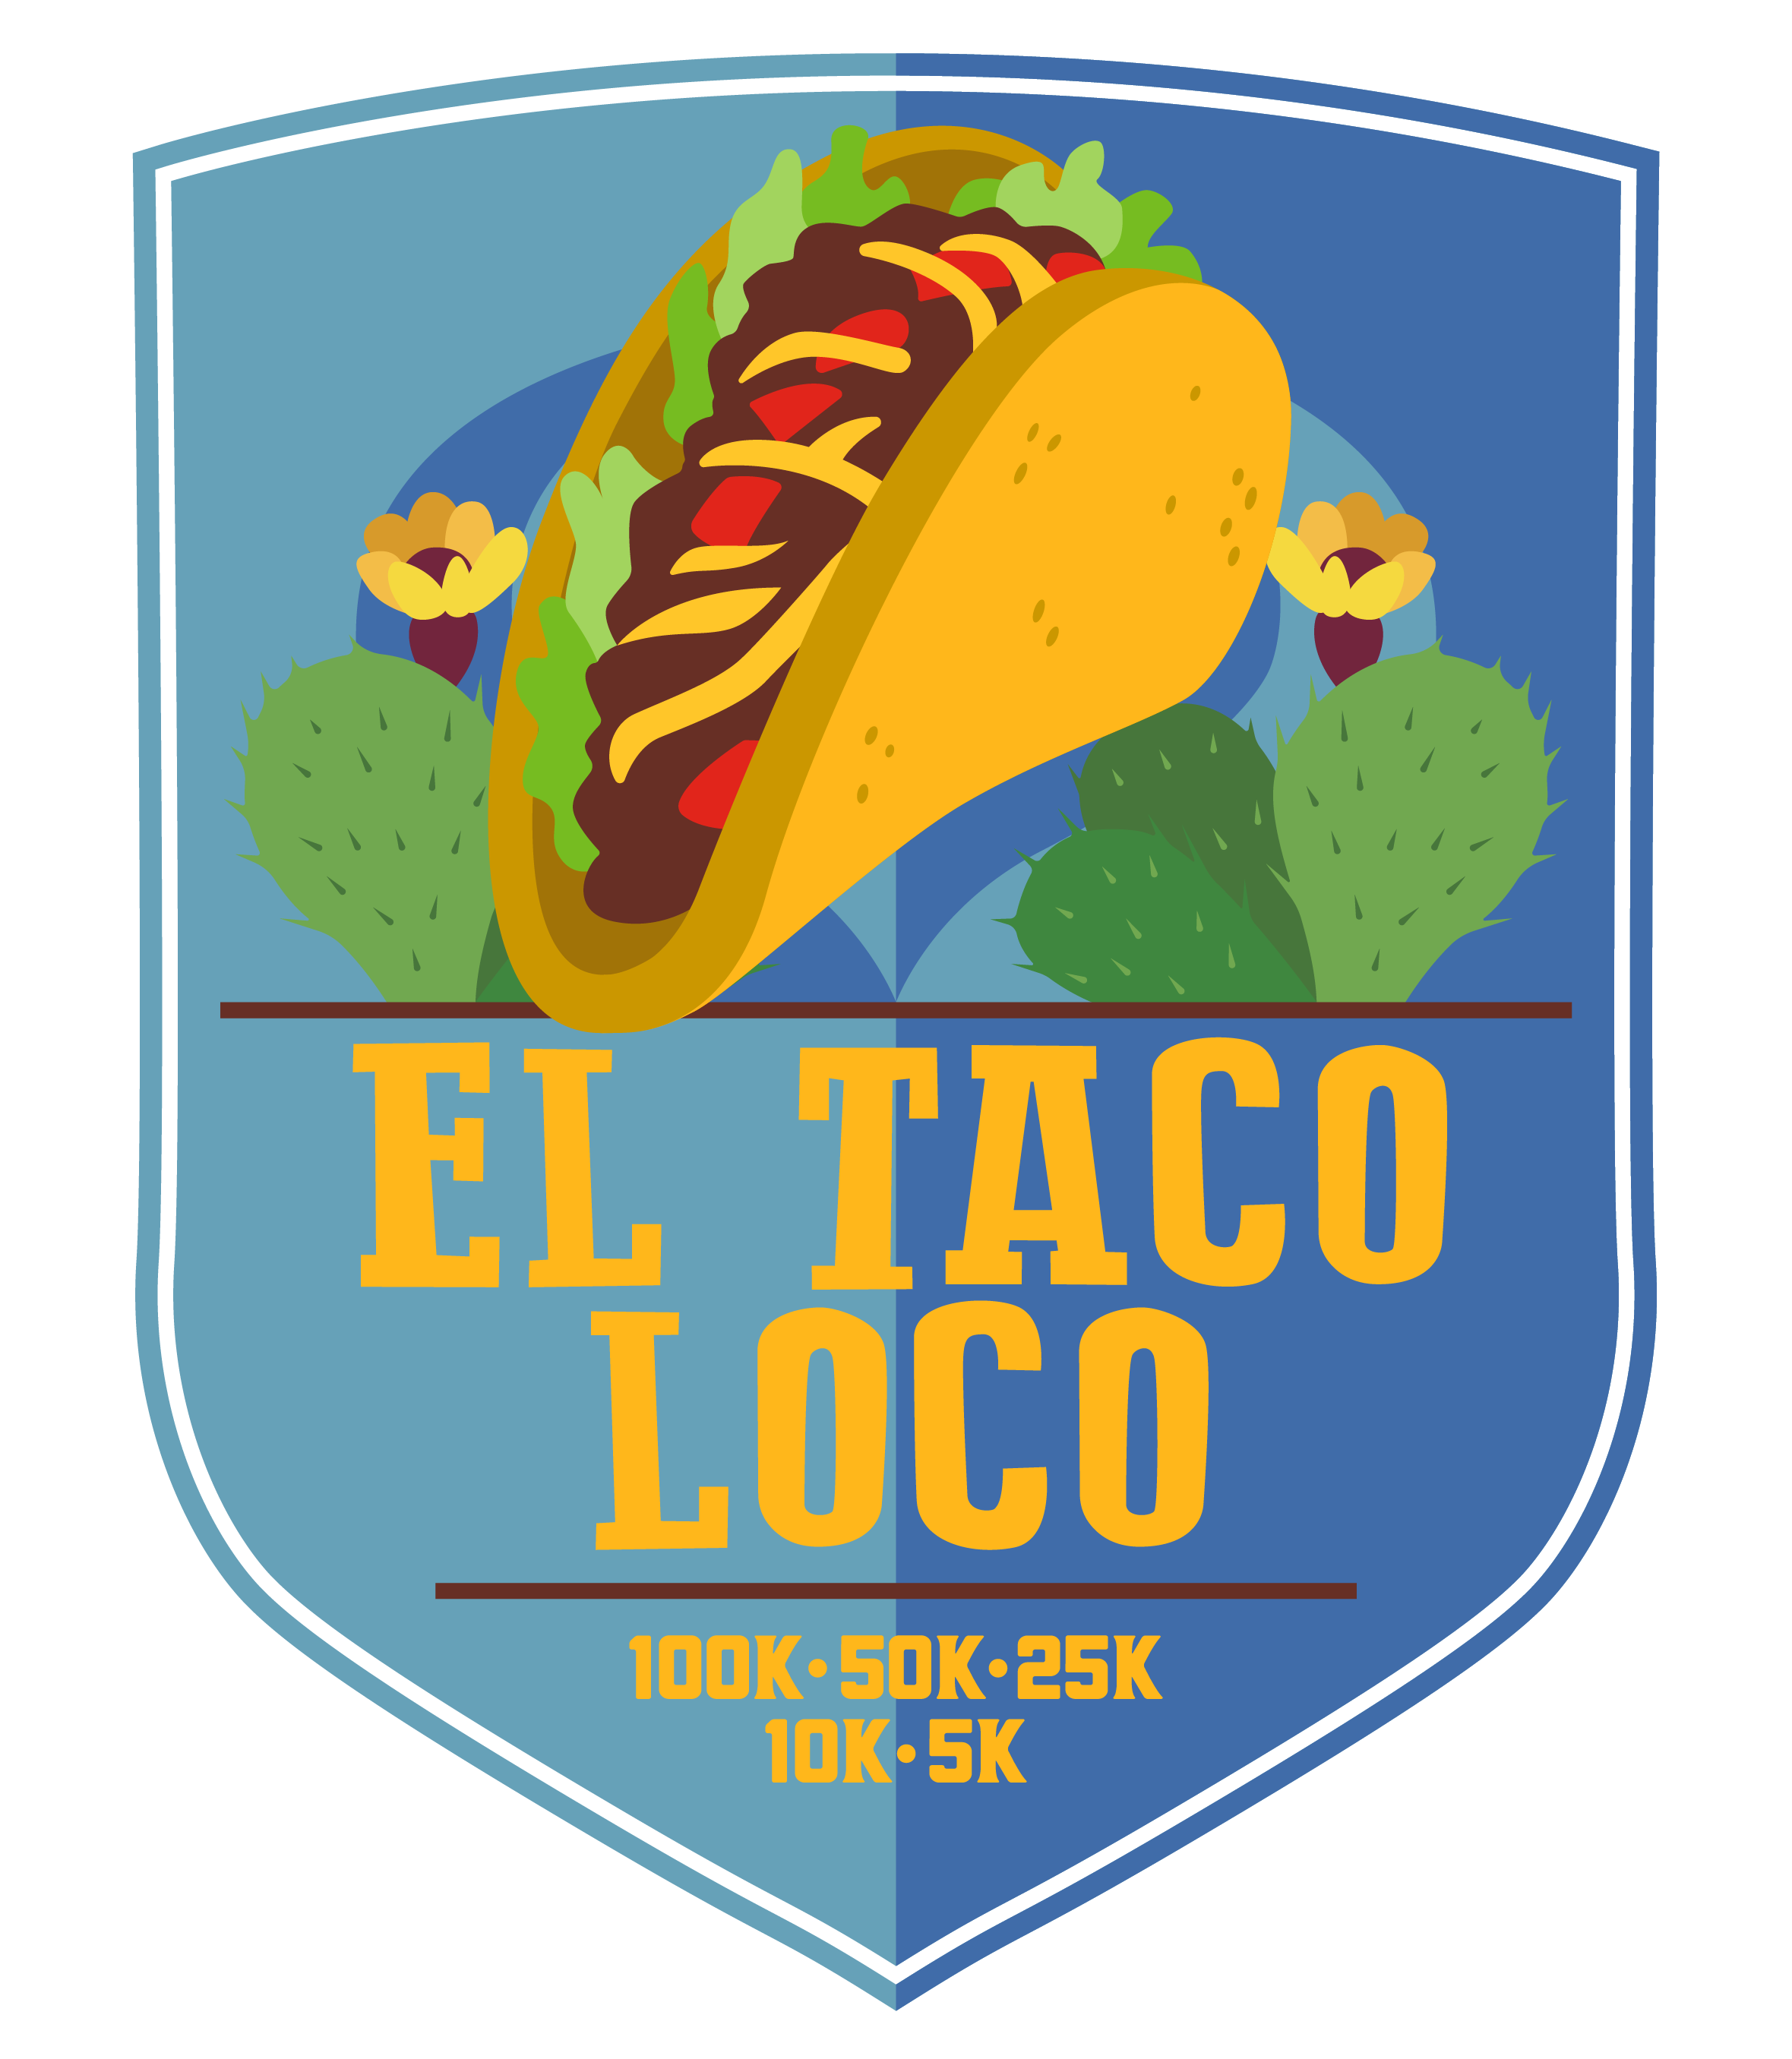 EL-TACO-LOCO_finished.png